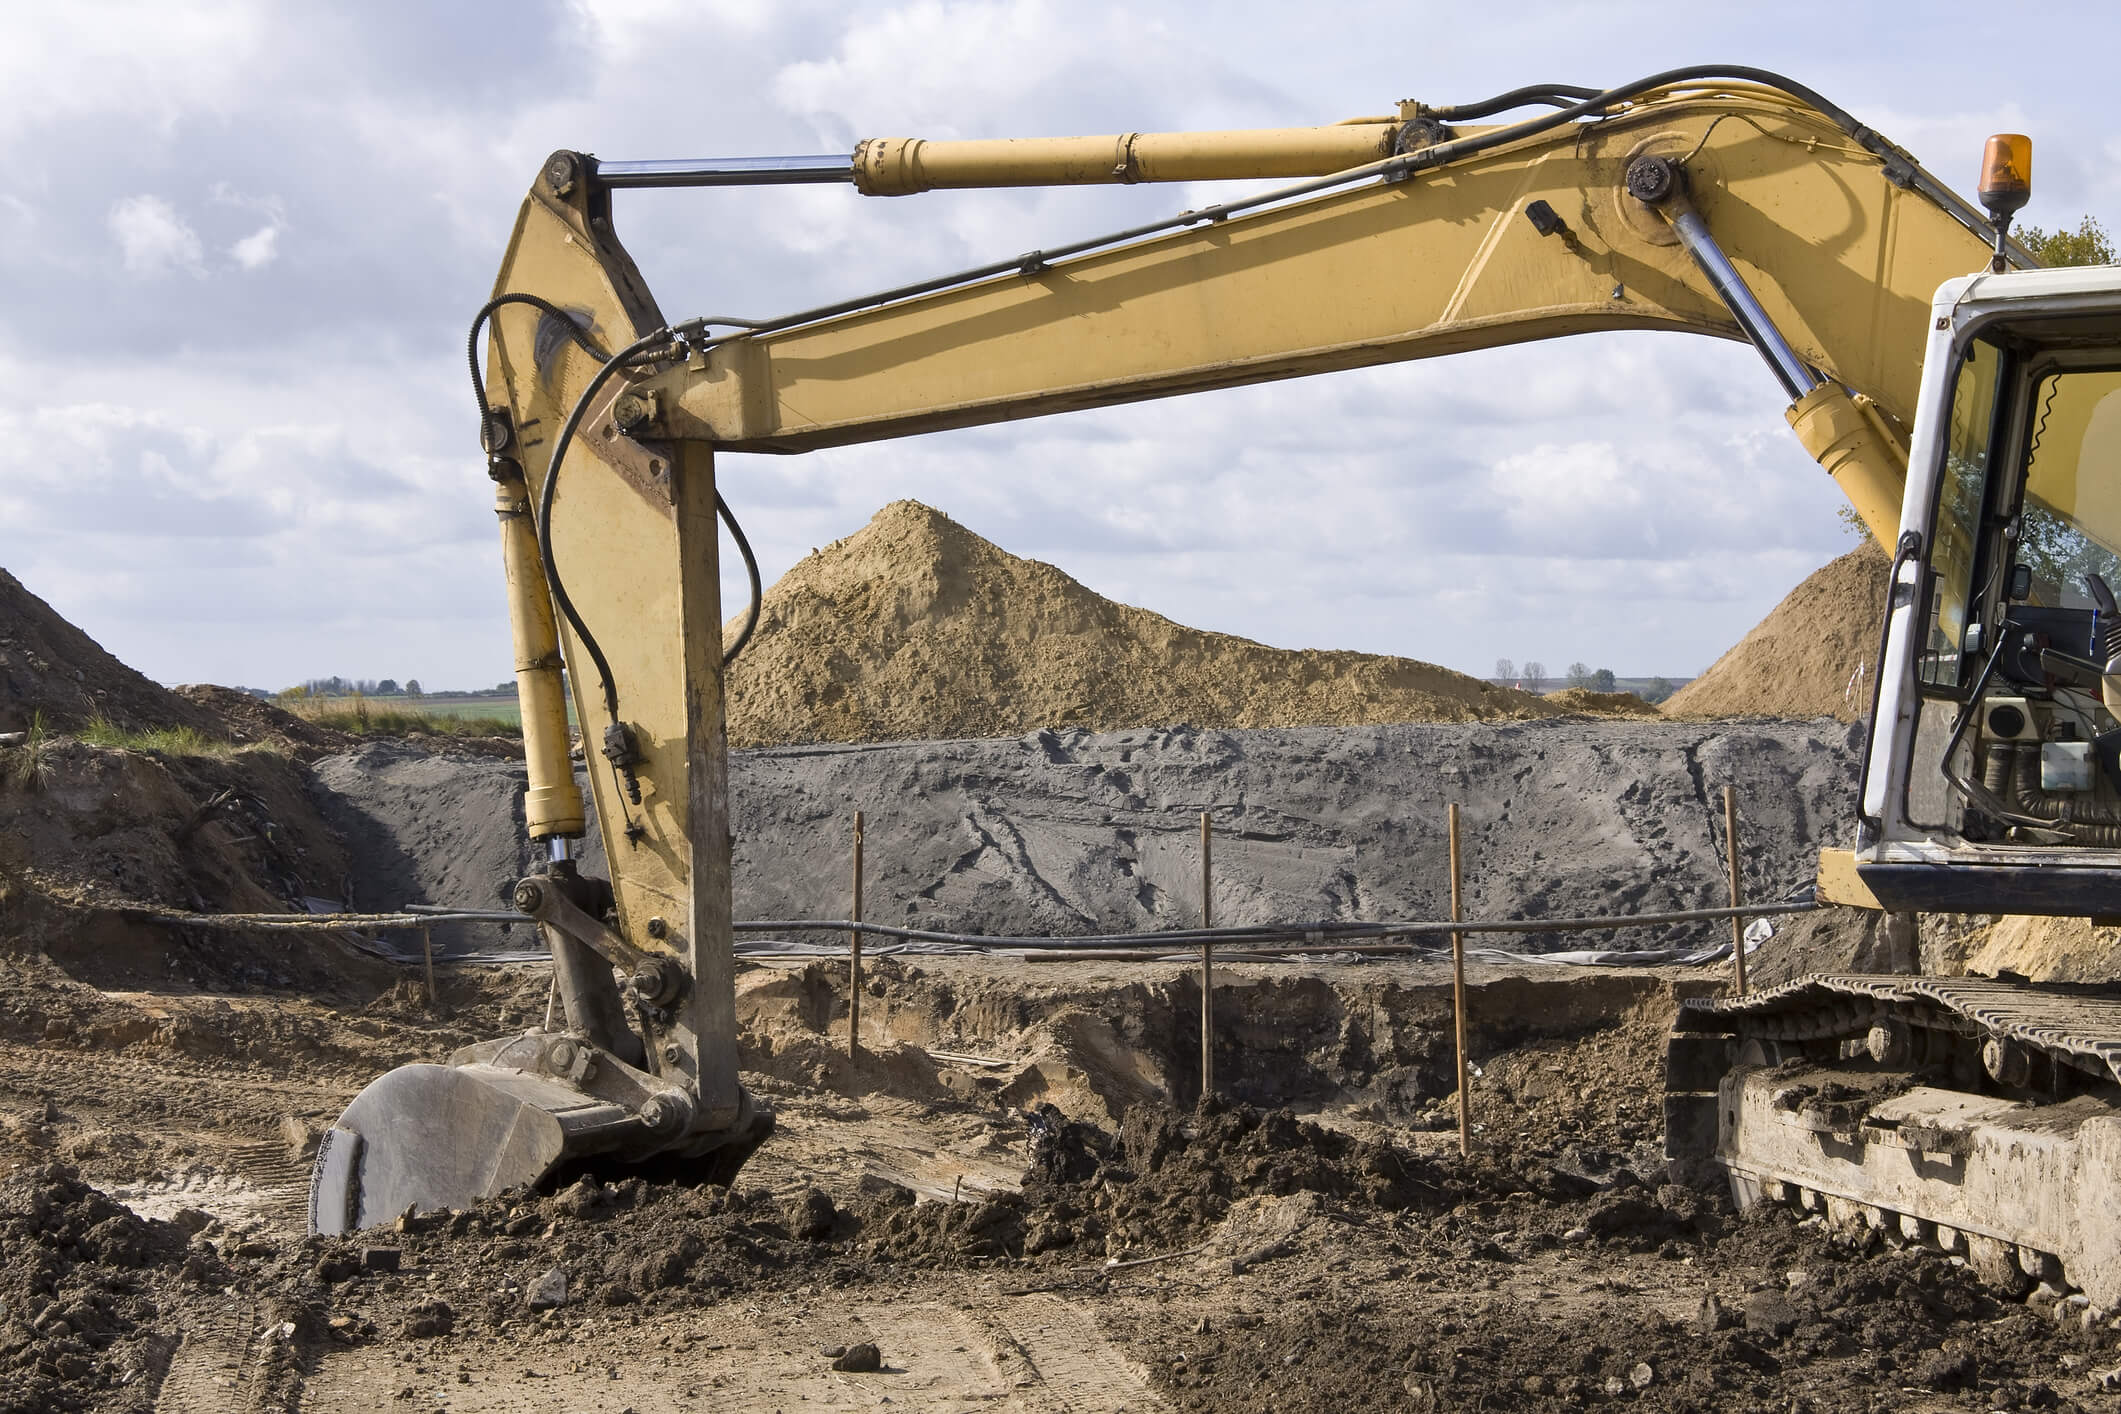 Large machine excavating dirt.